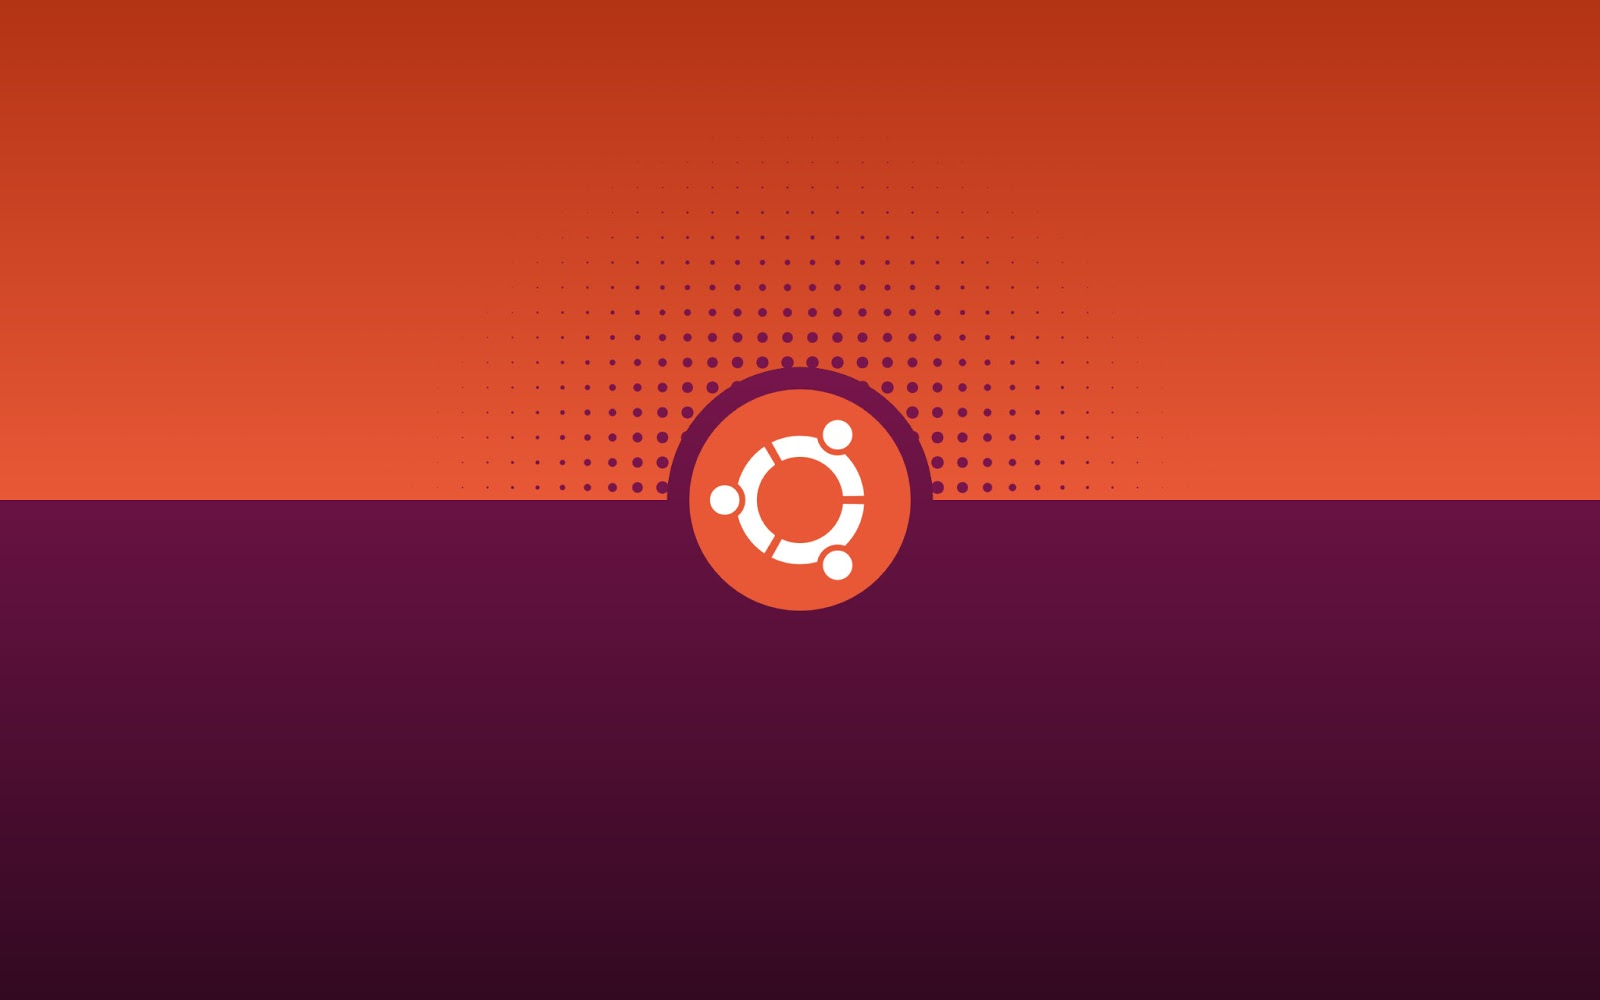 Ubuntu 3D Logos Wallpapers HD